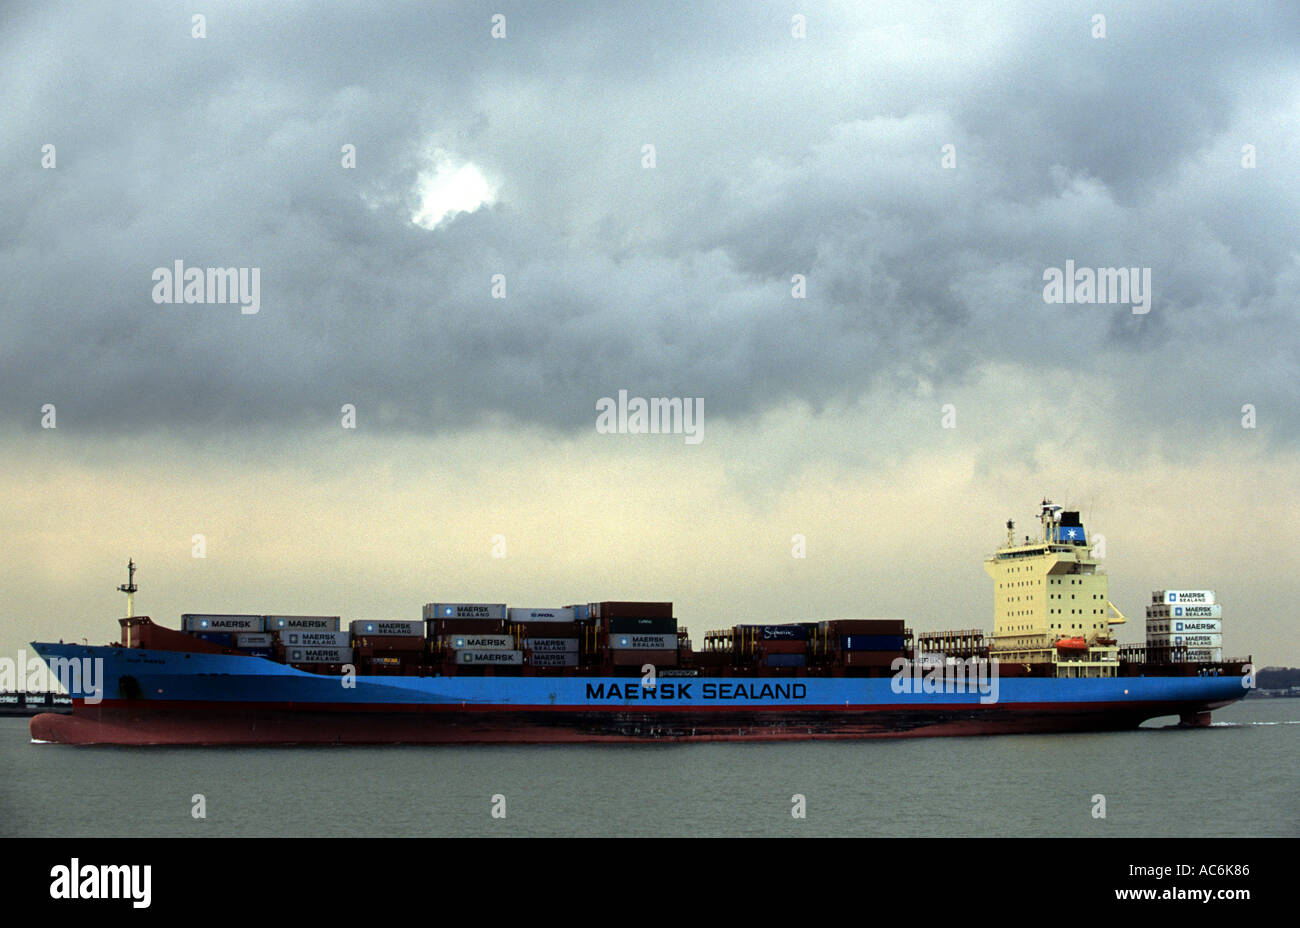 Maersk Sealand container ship 'Oluf', Port of Felixstowe, Suffolk, UK. Stock Photo